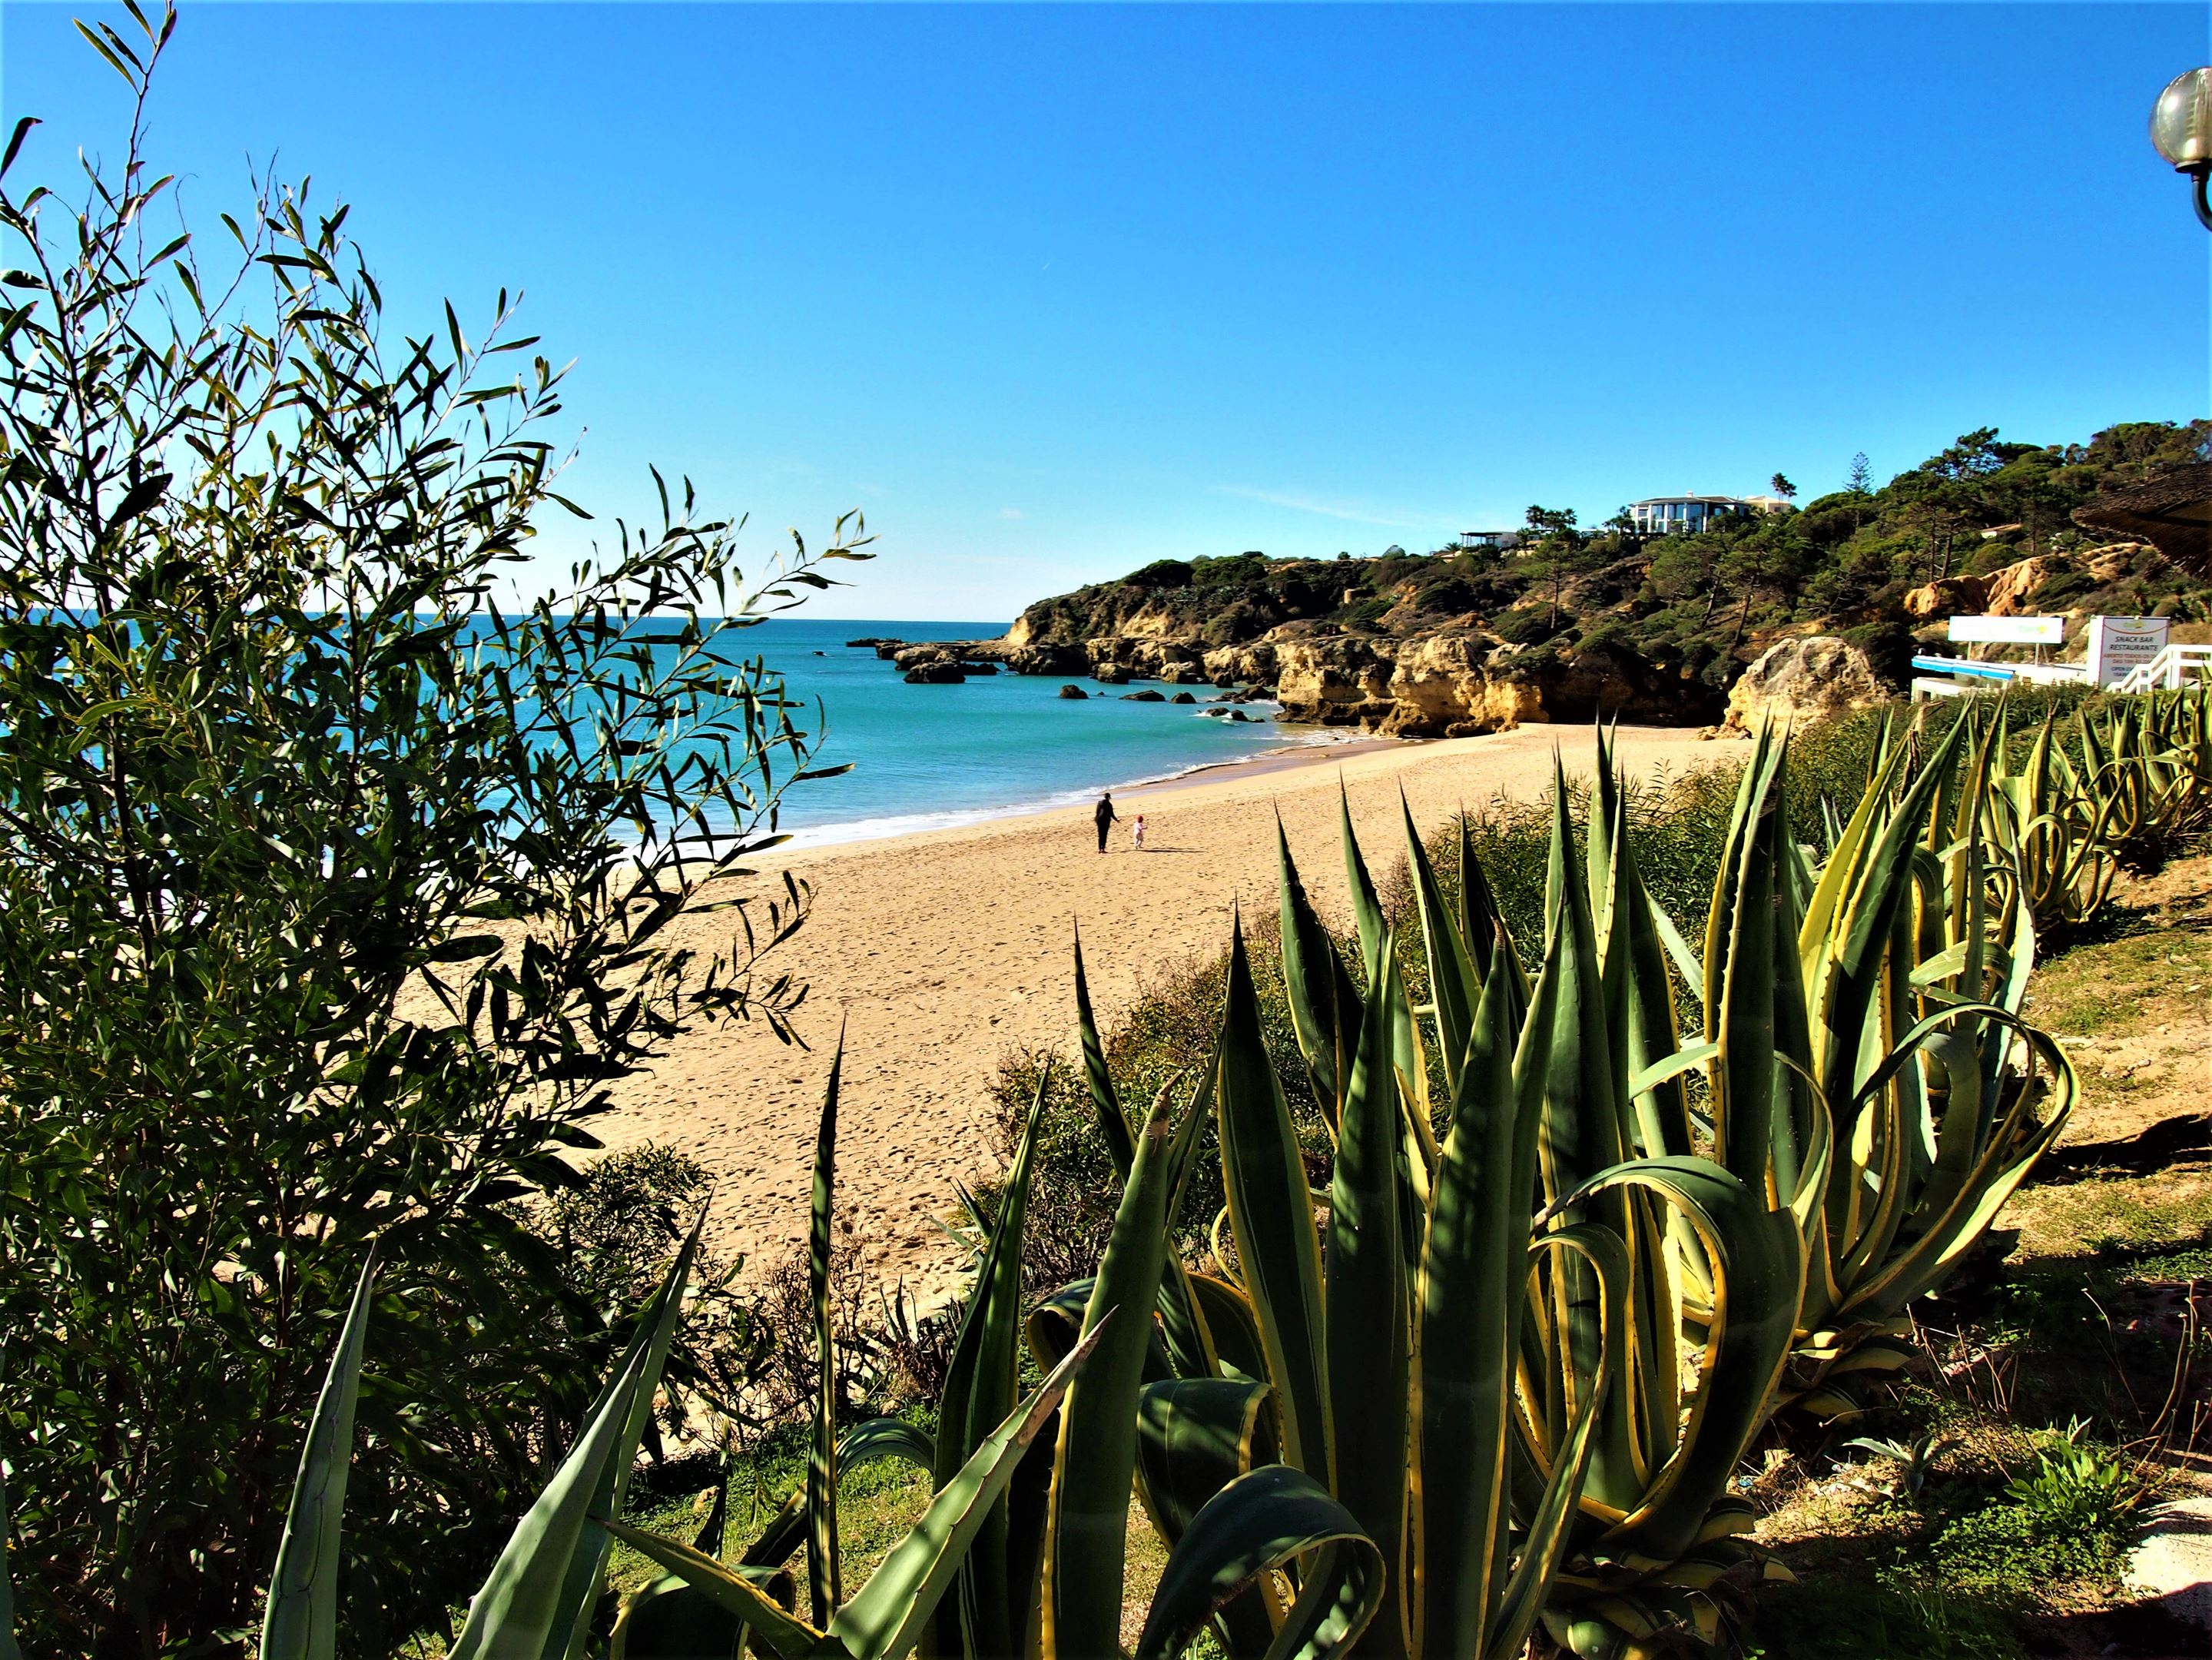 Praia do Oura beach, Albufeira, just a short walk from The Strip.